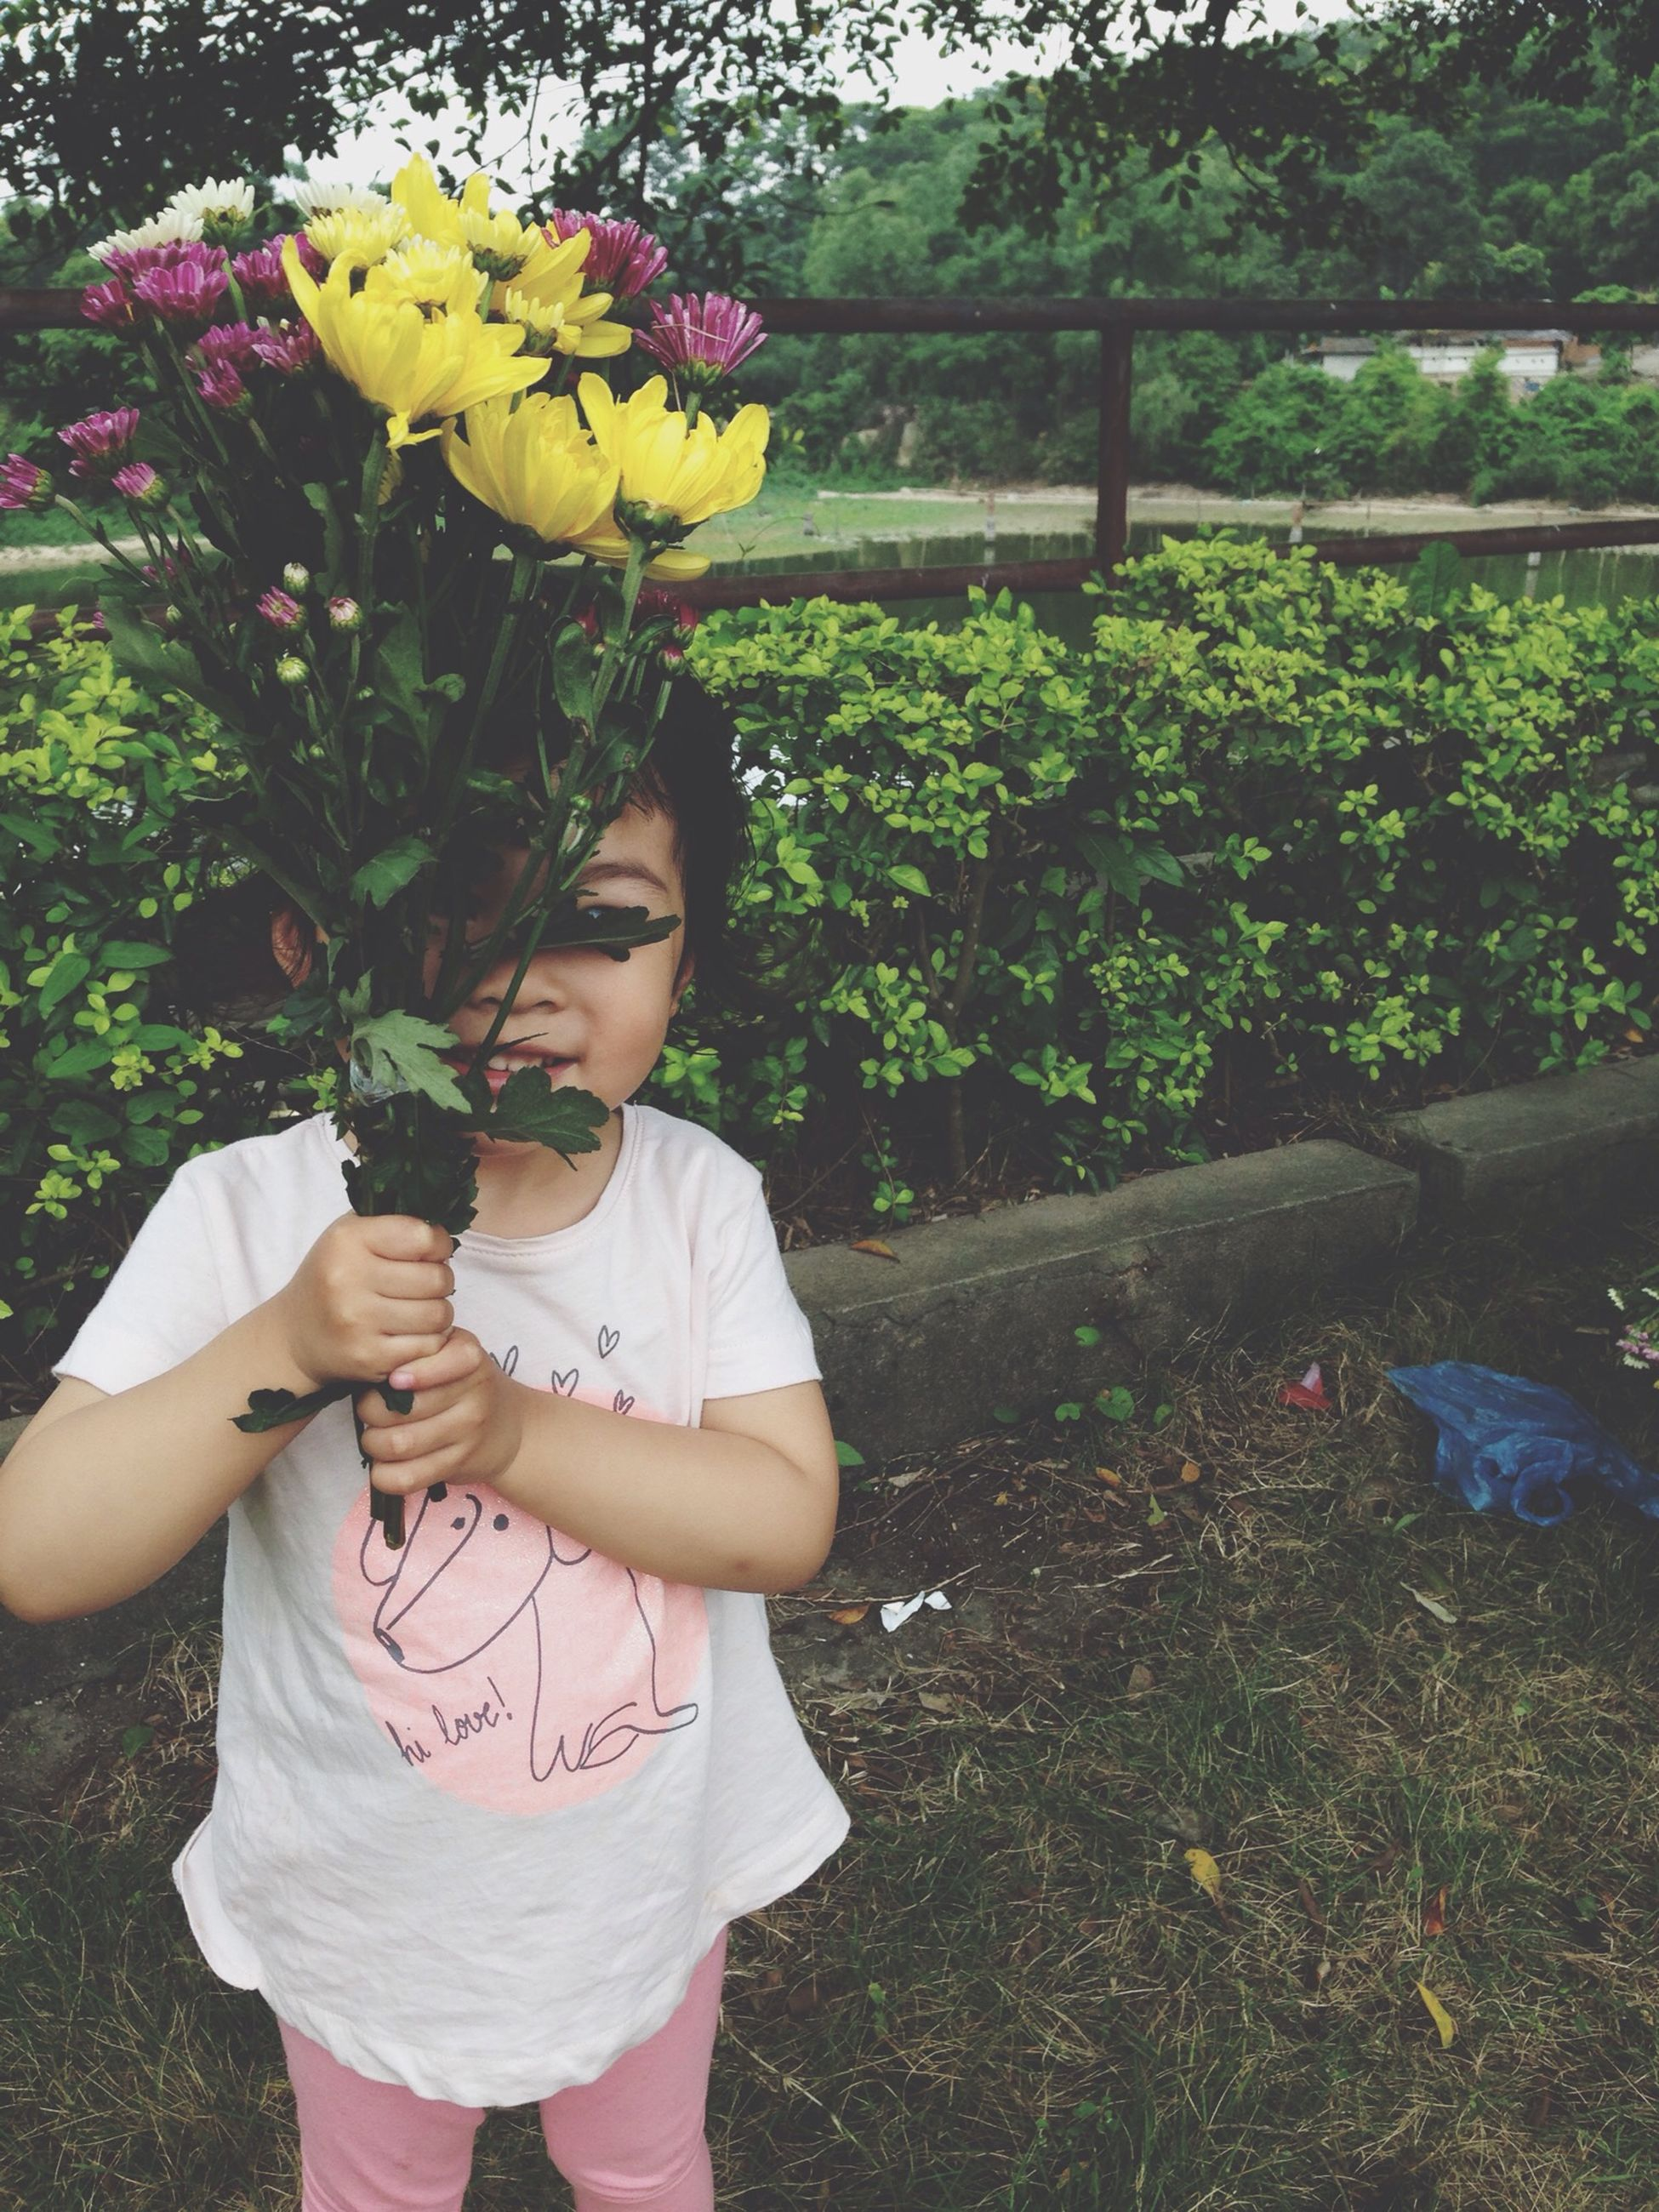 childhood, lifestyles, elementary age, girls, leisure activity, flower, holding, casual clothing, person, innocence, standing, boys, park - man made space, cute, freshness, three quarter length, playing, tree